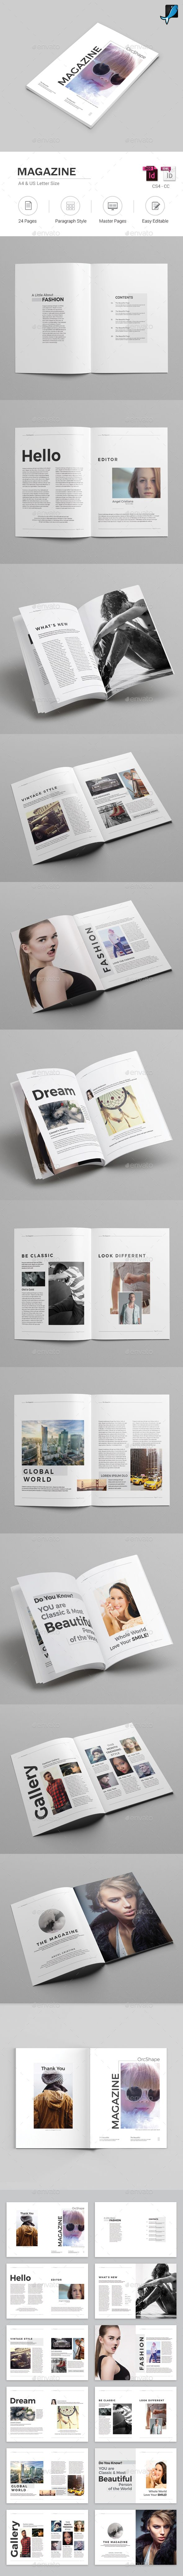 Magazine InDesign Template #fashion #minimal • Only available here! → https://graphicriver.net/item/magazine/17261288?ref=pxcr